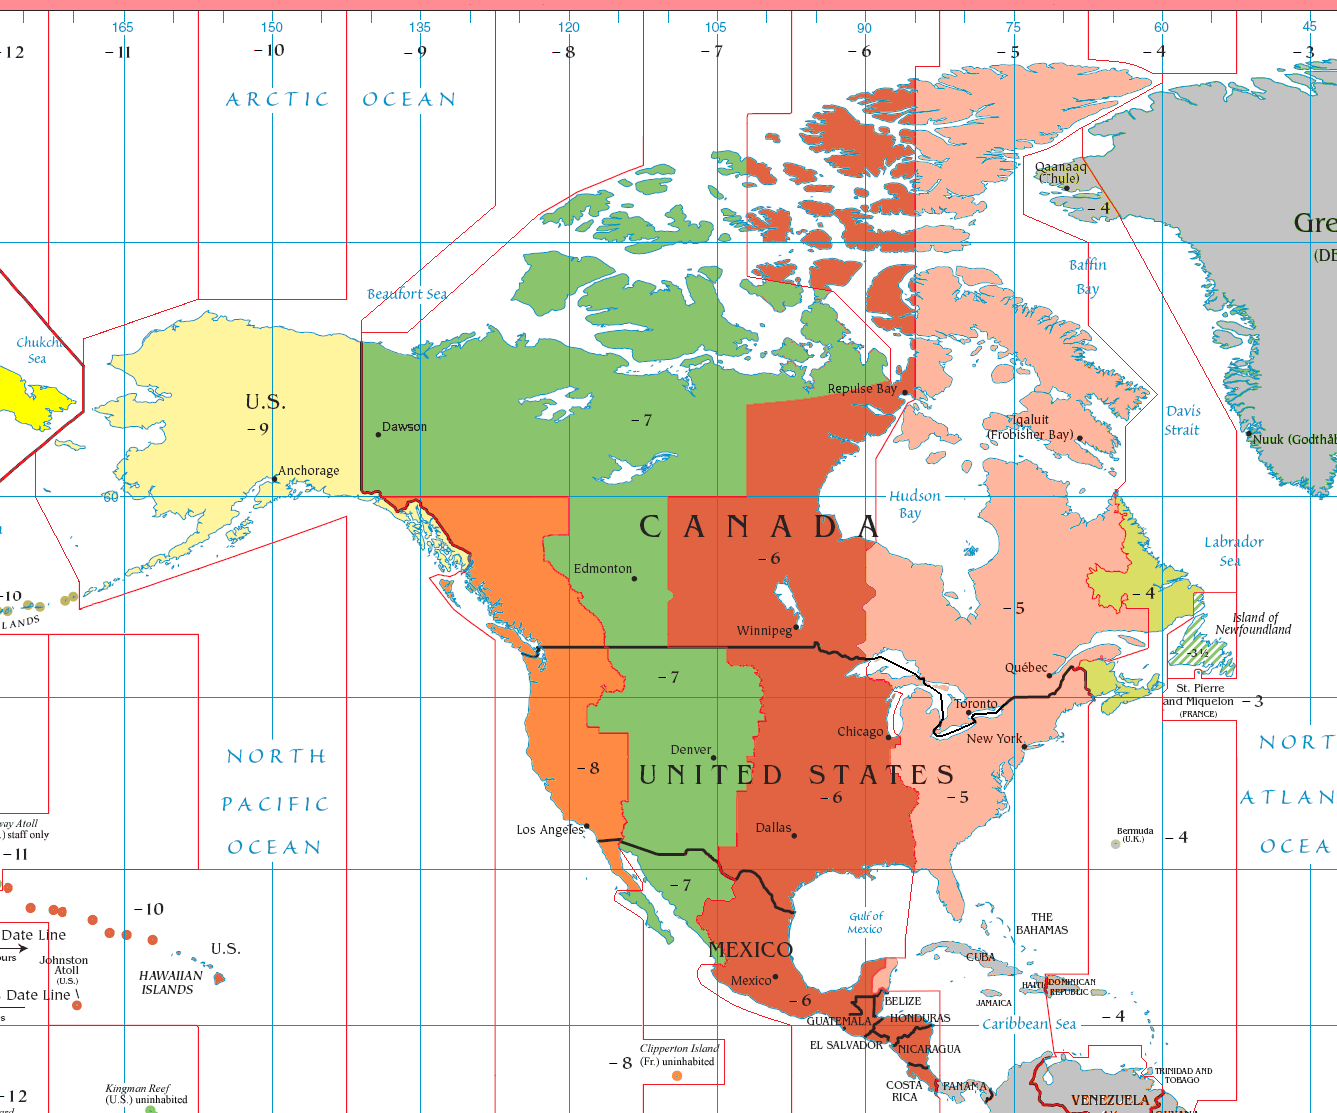 Eastern Time Zone - Wikipedia on usa and canada outline map, usa map with compass, usa map cartoon, antique compass and map, usa map with major cities, usa and canada border, canada shape on map, usa and canada state map, big usa time zone map, usa zip codes by city list, usa time zones map color, us compass zone map, usa and mexico map with state names, usa time zone map with area codes, canada flag map, utm grid zone map, compass variance zone map, usa map time zone clock, usa maps united states, north carolina on usa map,